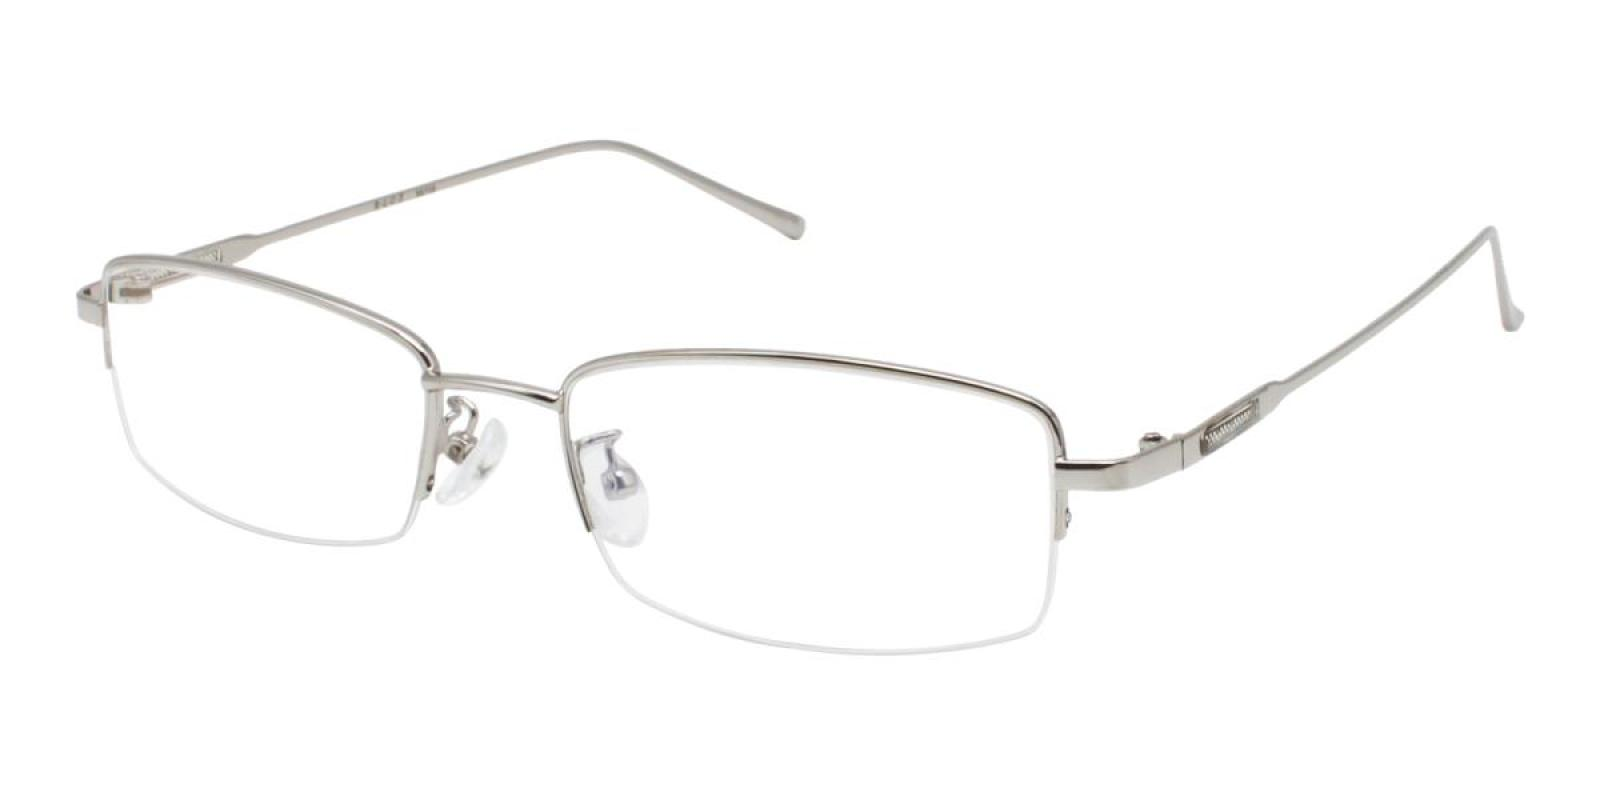 Germantown-Silver-Rectangle-Metal-Eyeglasses-additional1